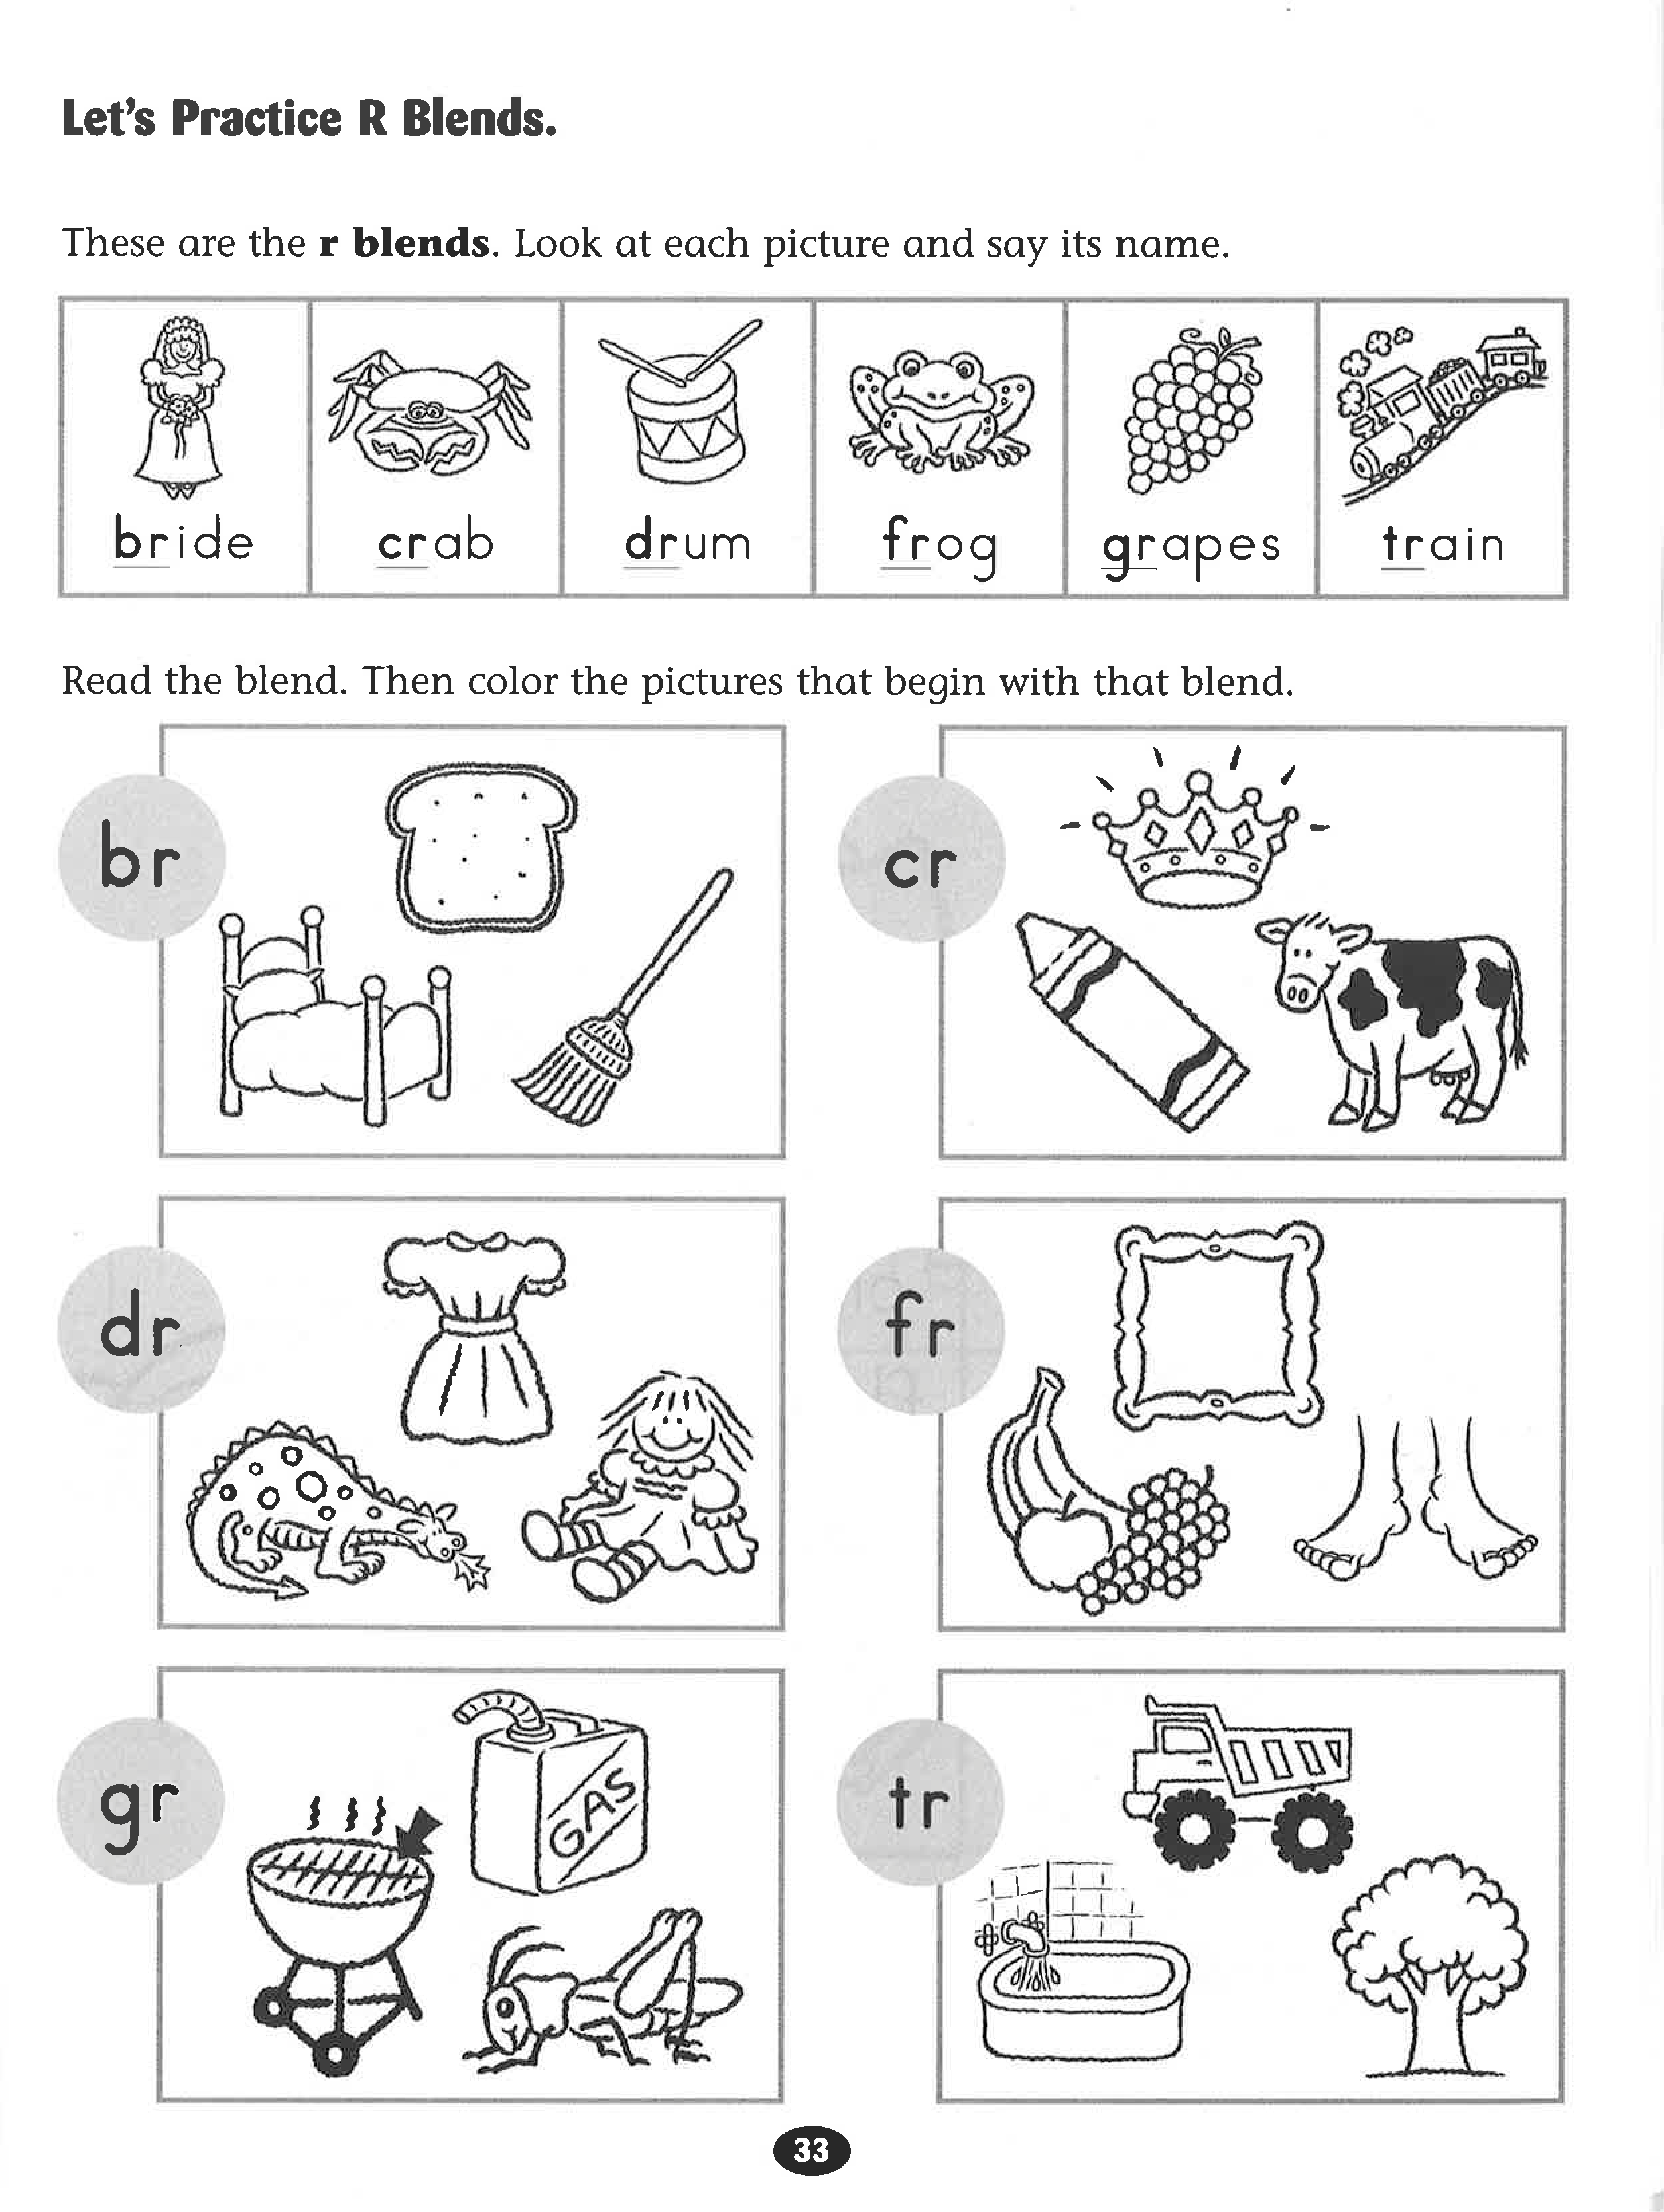 Worksheets Blend Worksheets lets practice r blends worksheet rockin reader pinterest worksheet